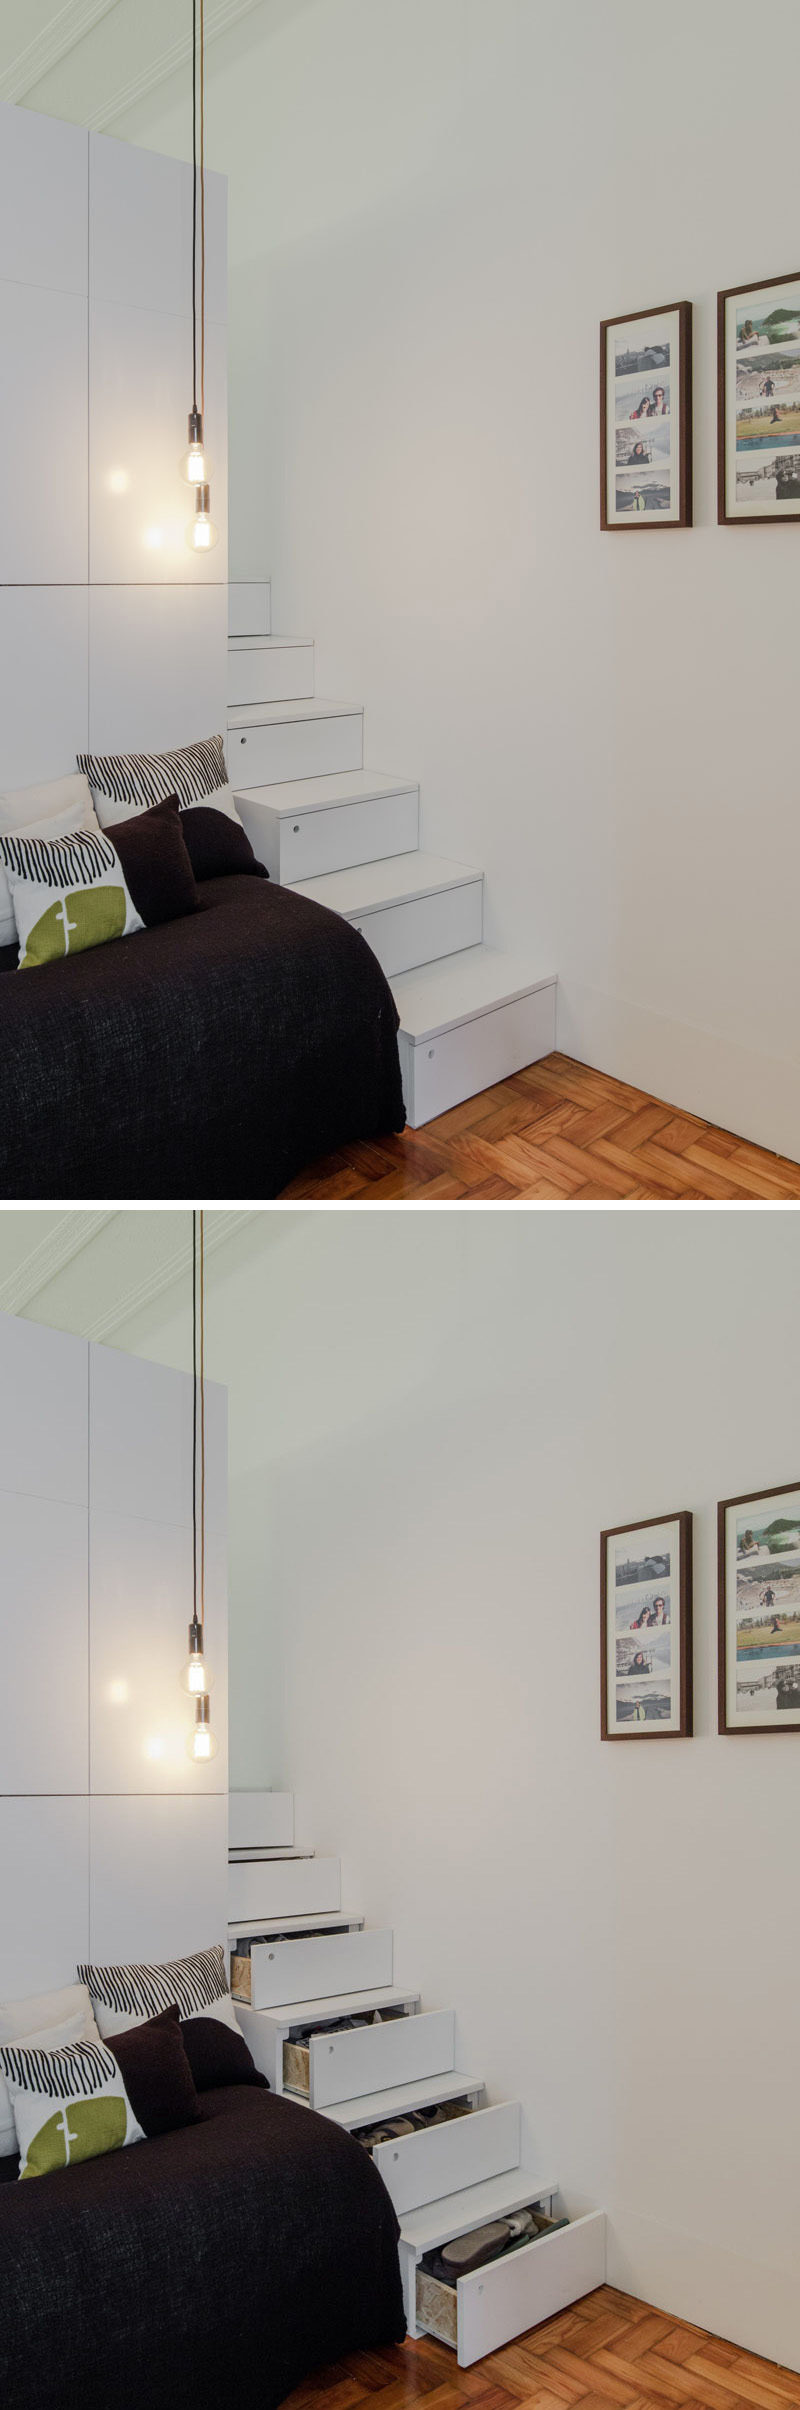 Picture of: This Small Apartment Has A Pull Out Bed That Doubles As A Sofa